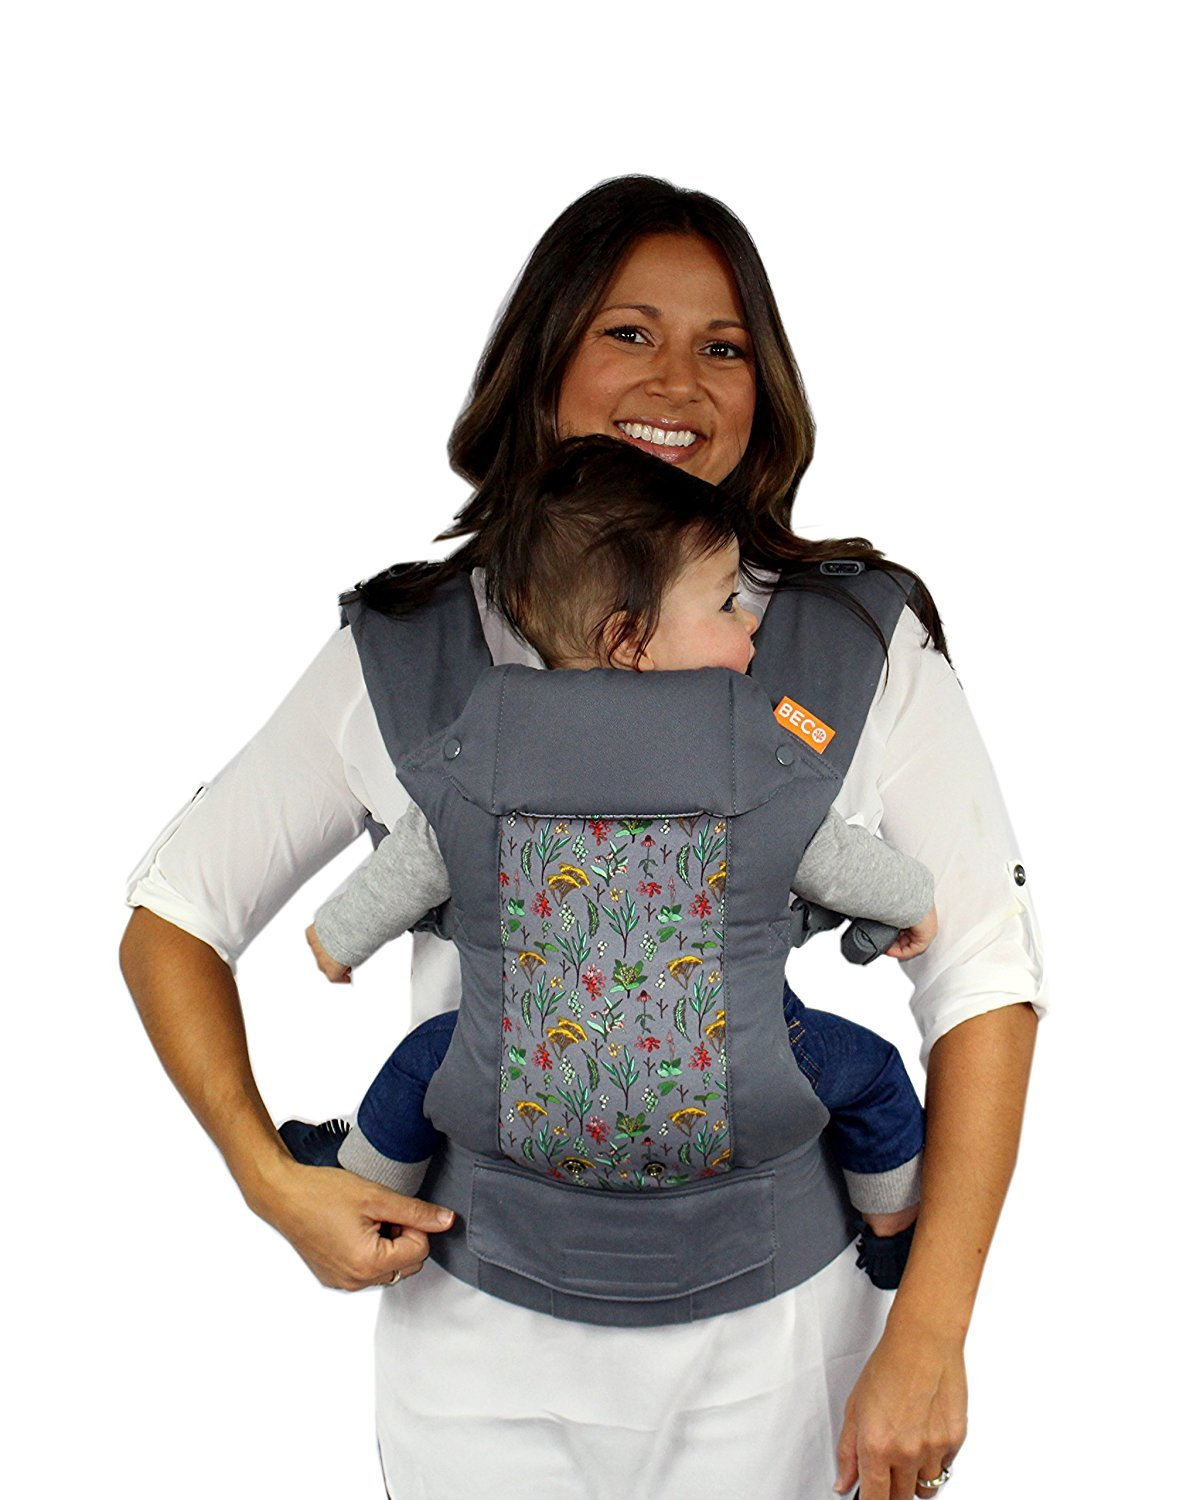 Beco Gemini Beco Baby Carrier Inc.